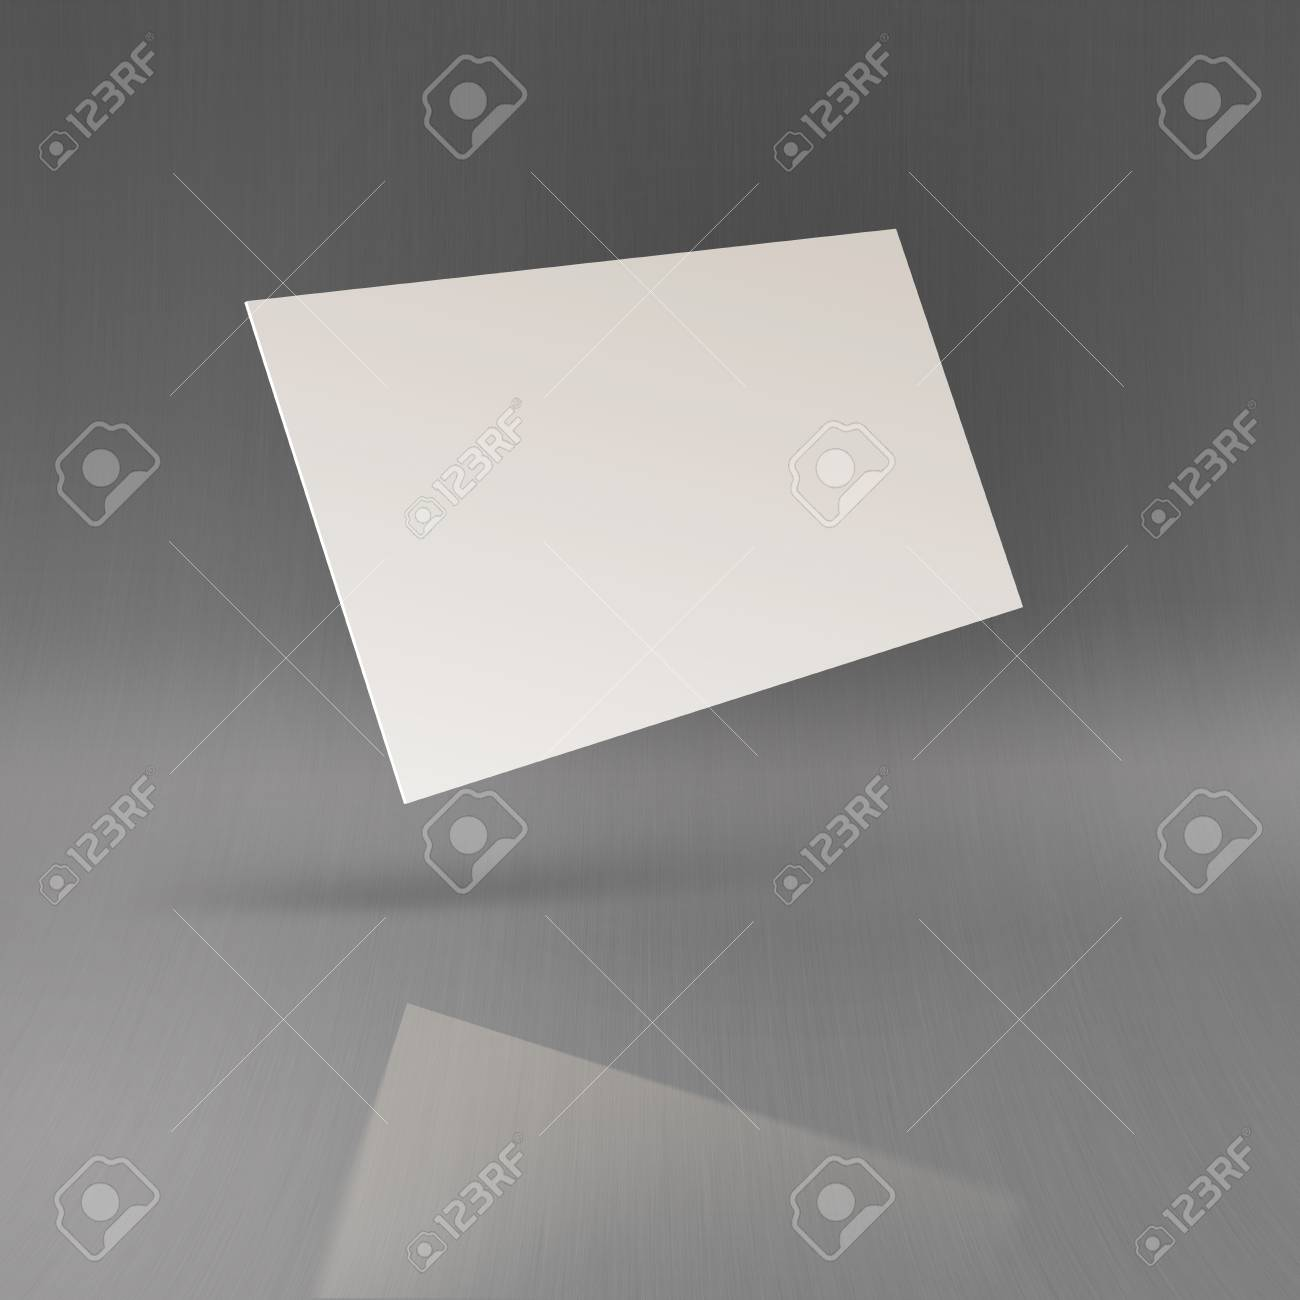 Blank business cards on gray background stock photo picture and blank business cards on gray background stock photo 49939318 reheart Gallery